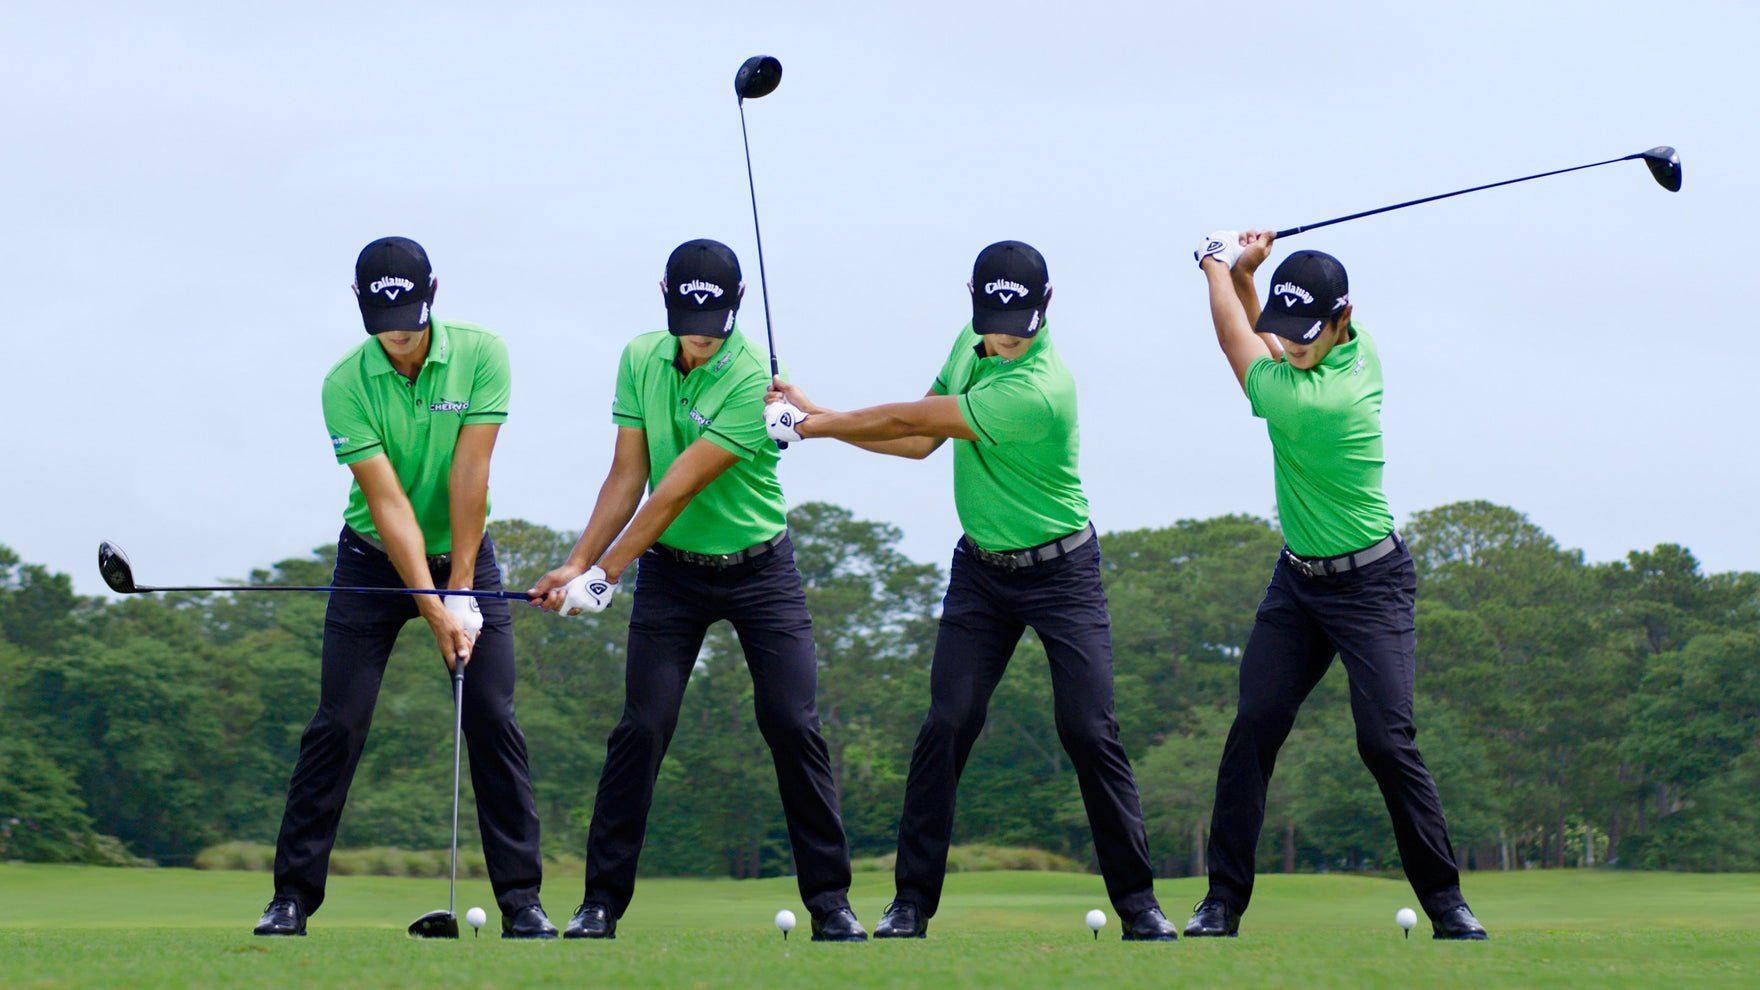 The Most Important Part Of Golf Swing Tips